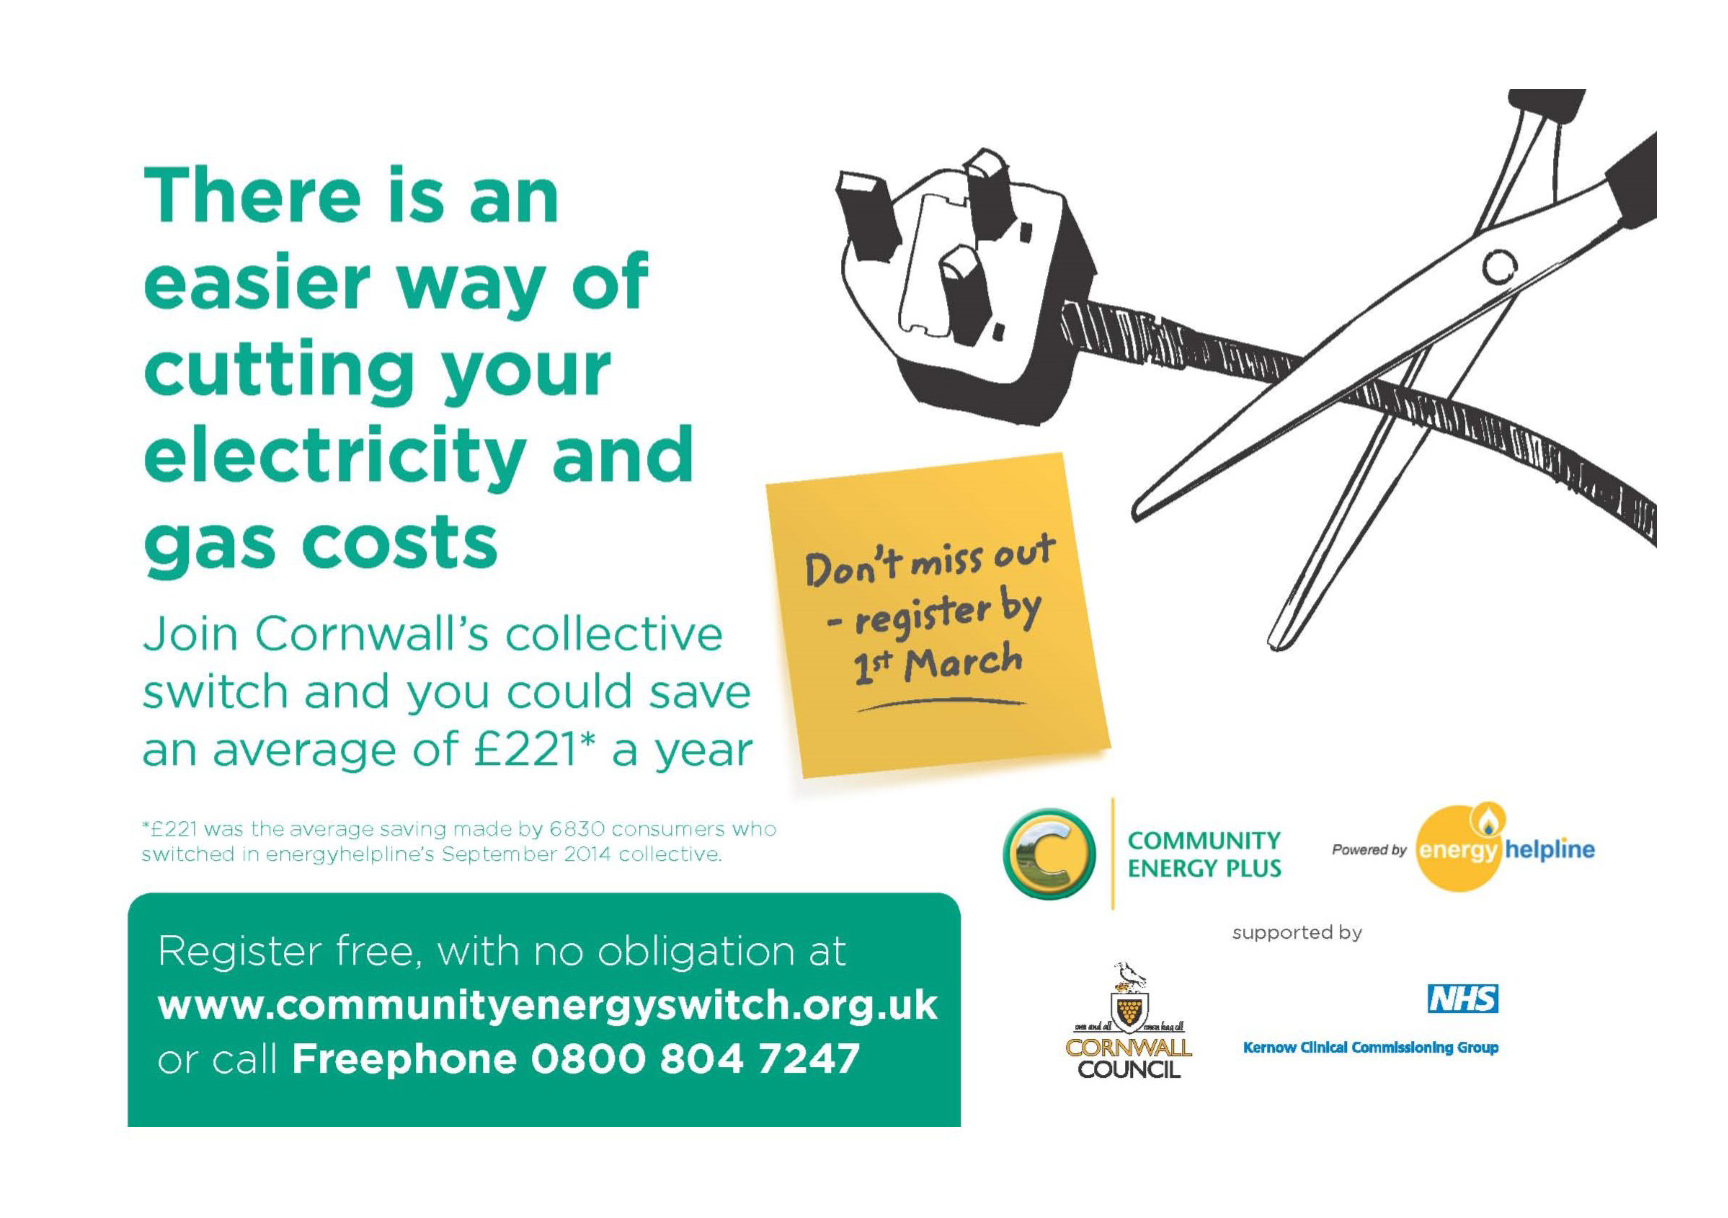 Image: Community Energy Switch advert